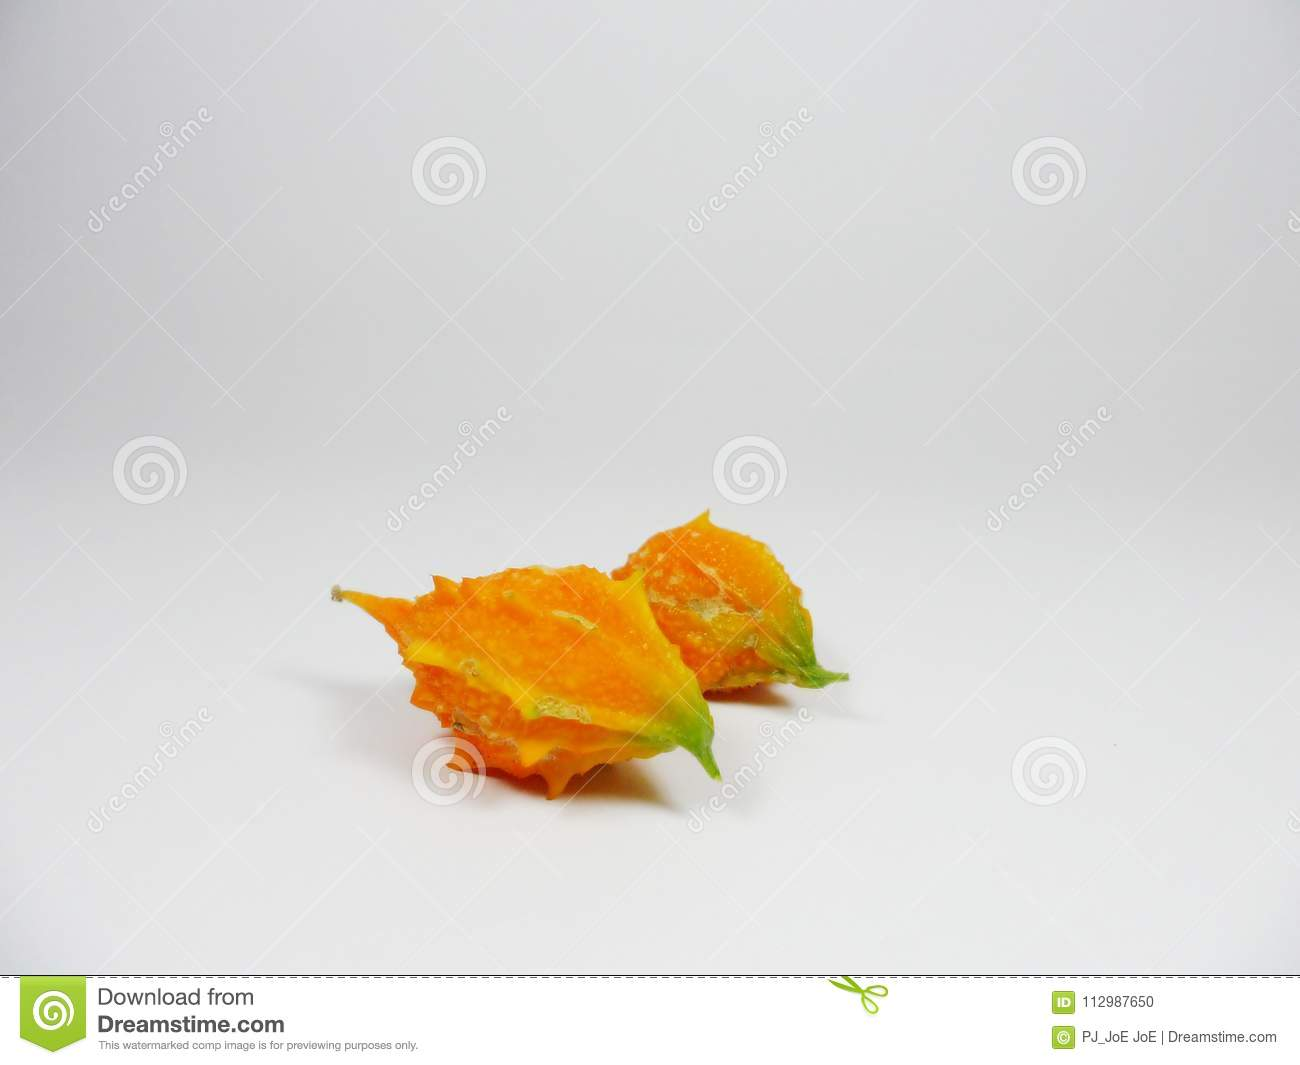 Bitter gourd,bitter melon, bitter gourd, bittersquash,balsam-pear,Momordica charantia isolated on a white background